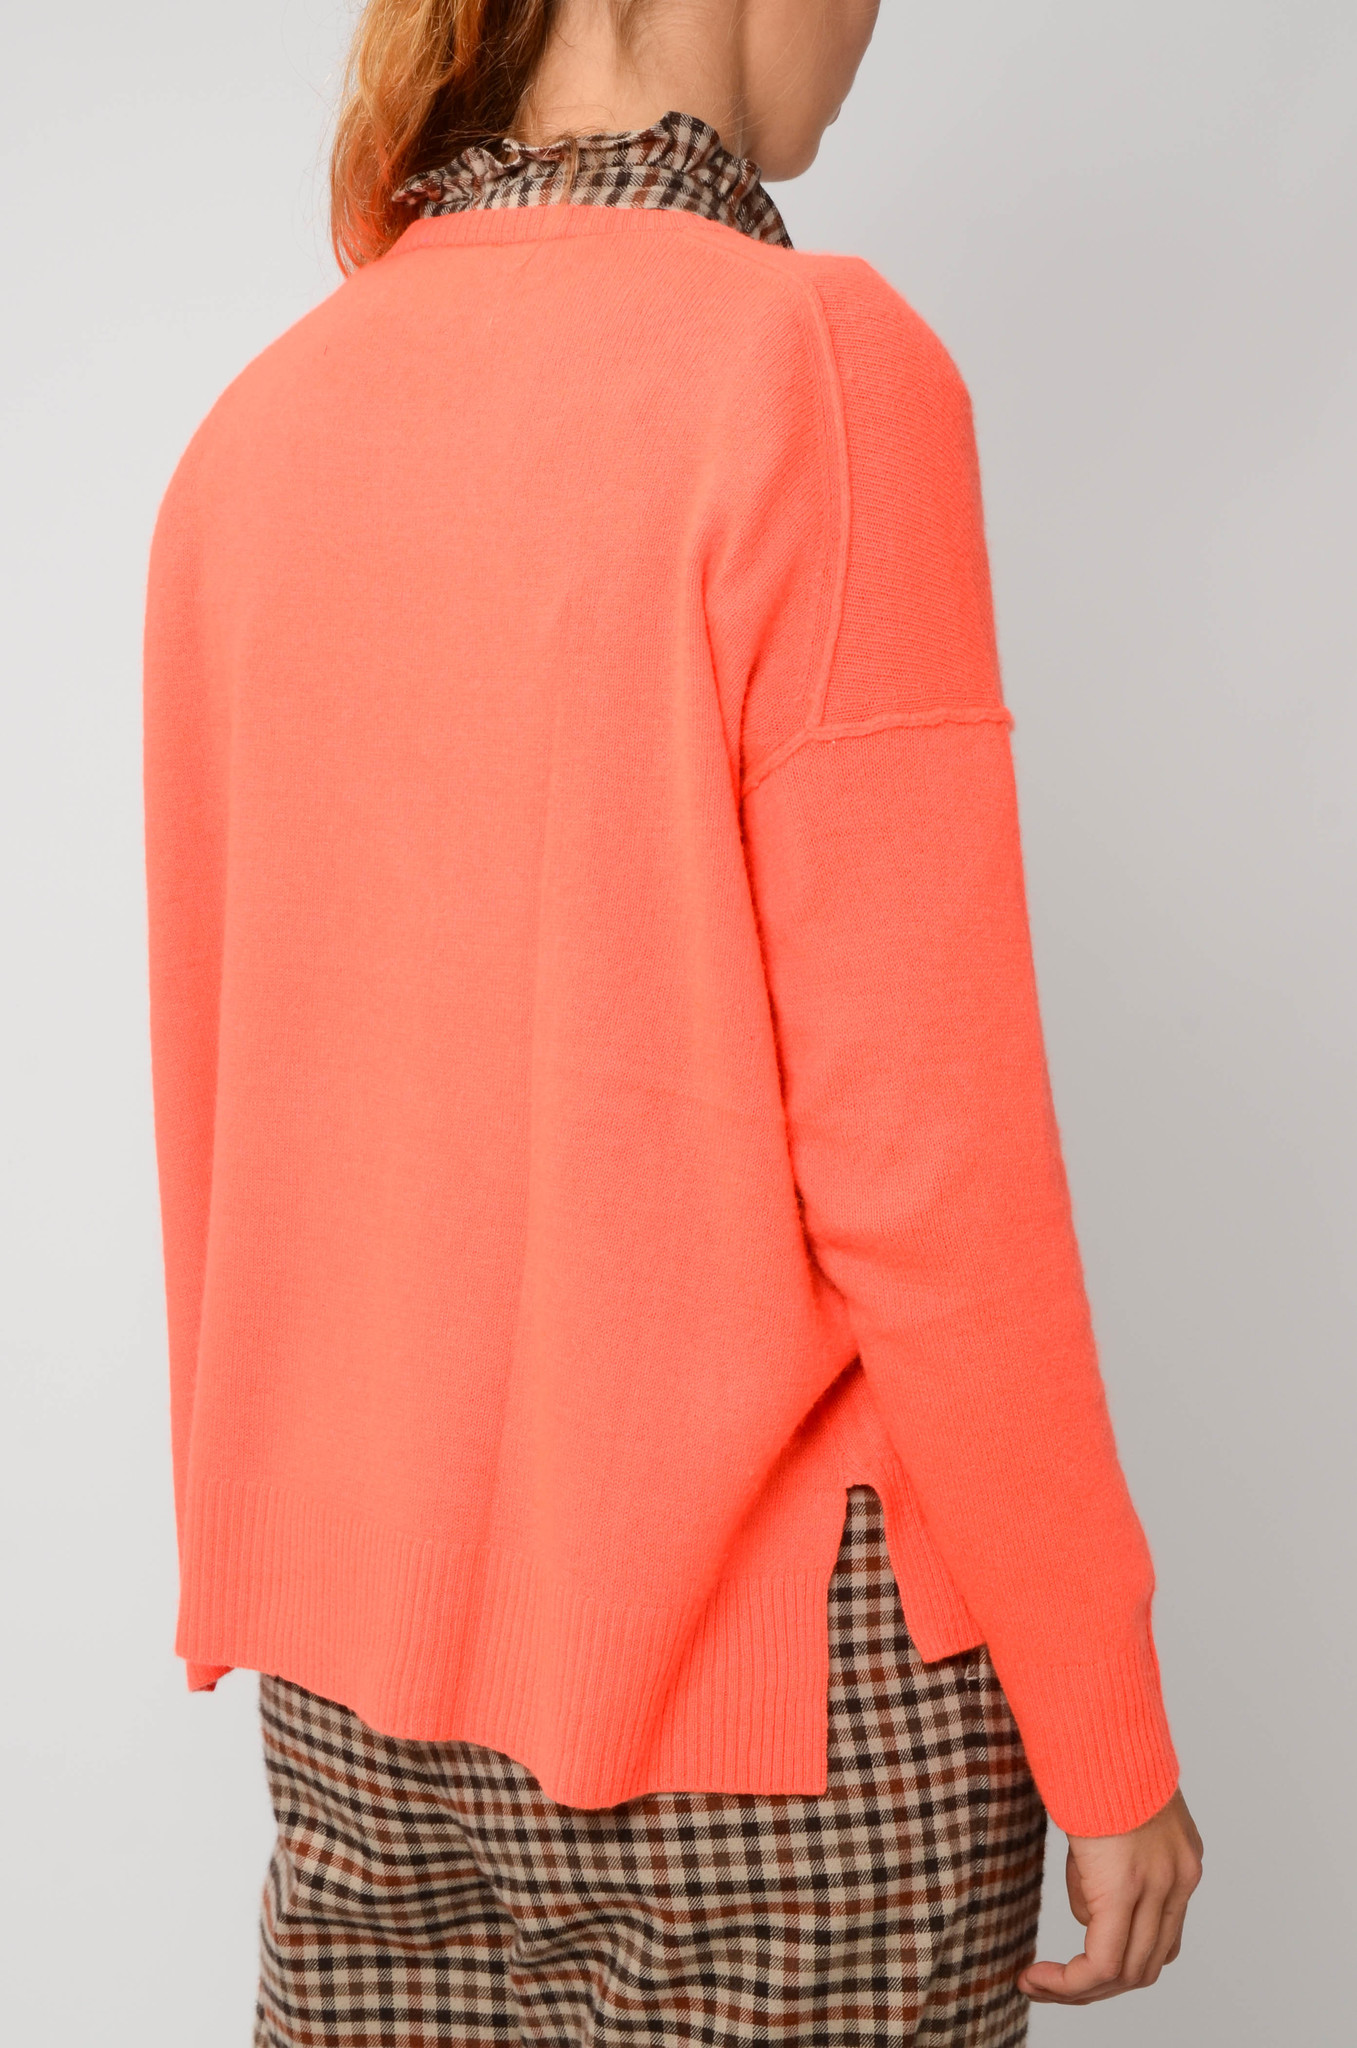 KENZA SWEATER IN NEON CORAL-4